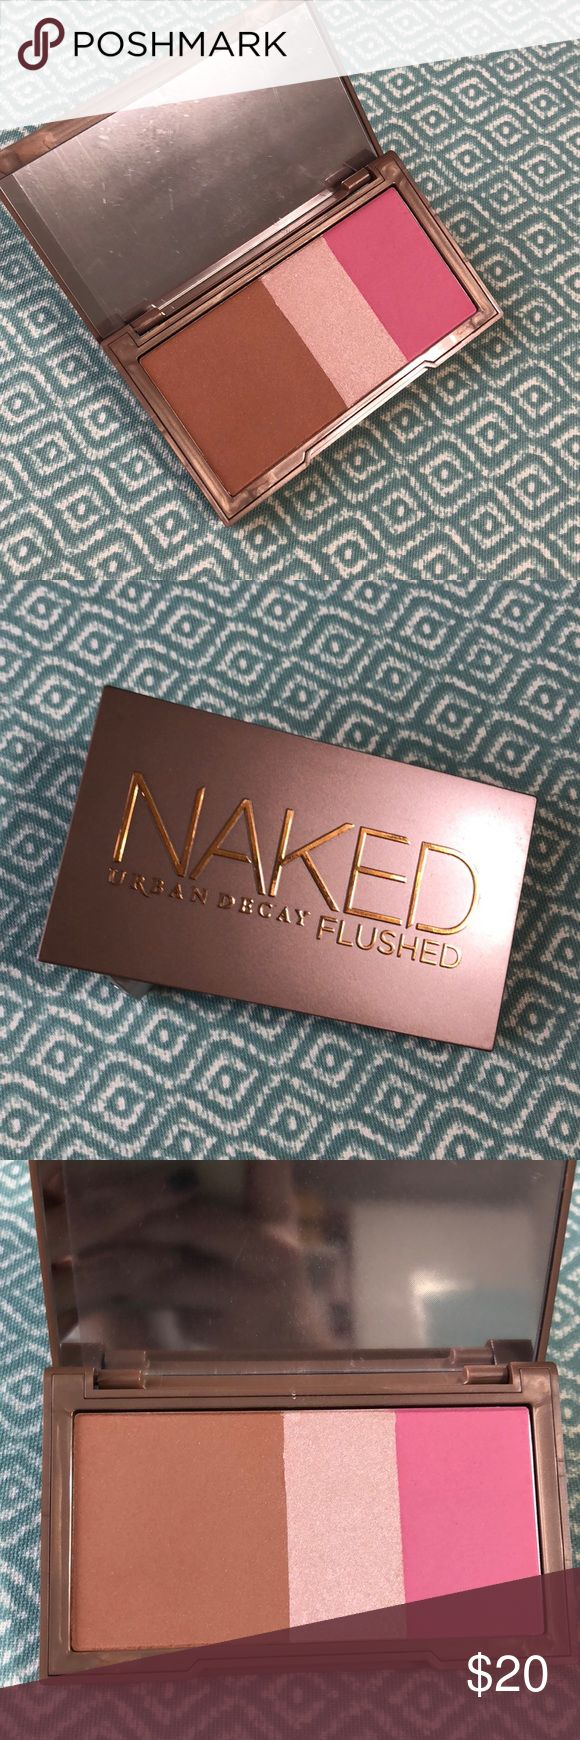 New Urban Decay Naked Flushed pallet in Native Brand new with plastic still on mirror never used Naked urban decay flushed face pallet in Native Urban Decay Makeup Bronzer